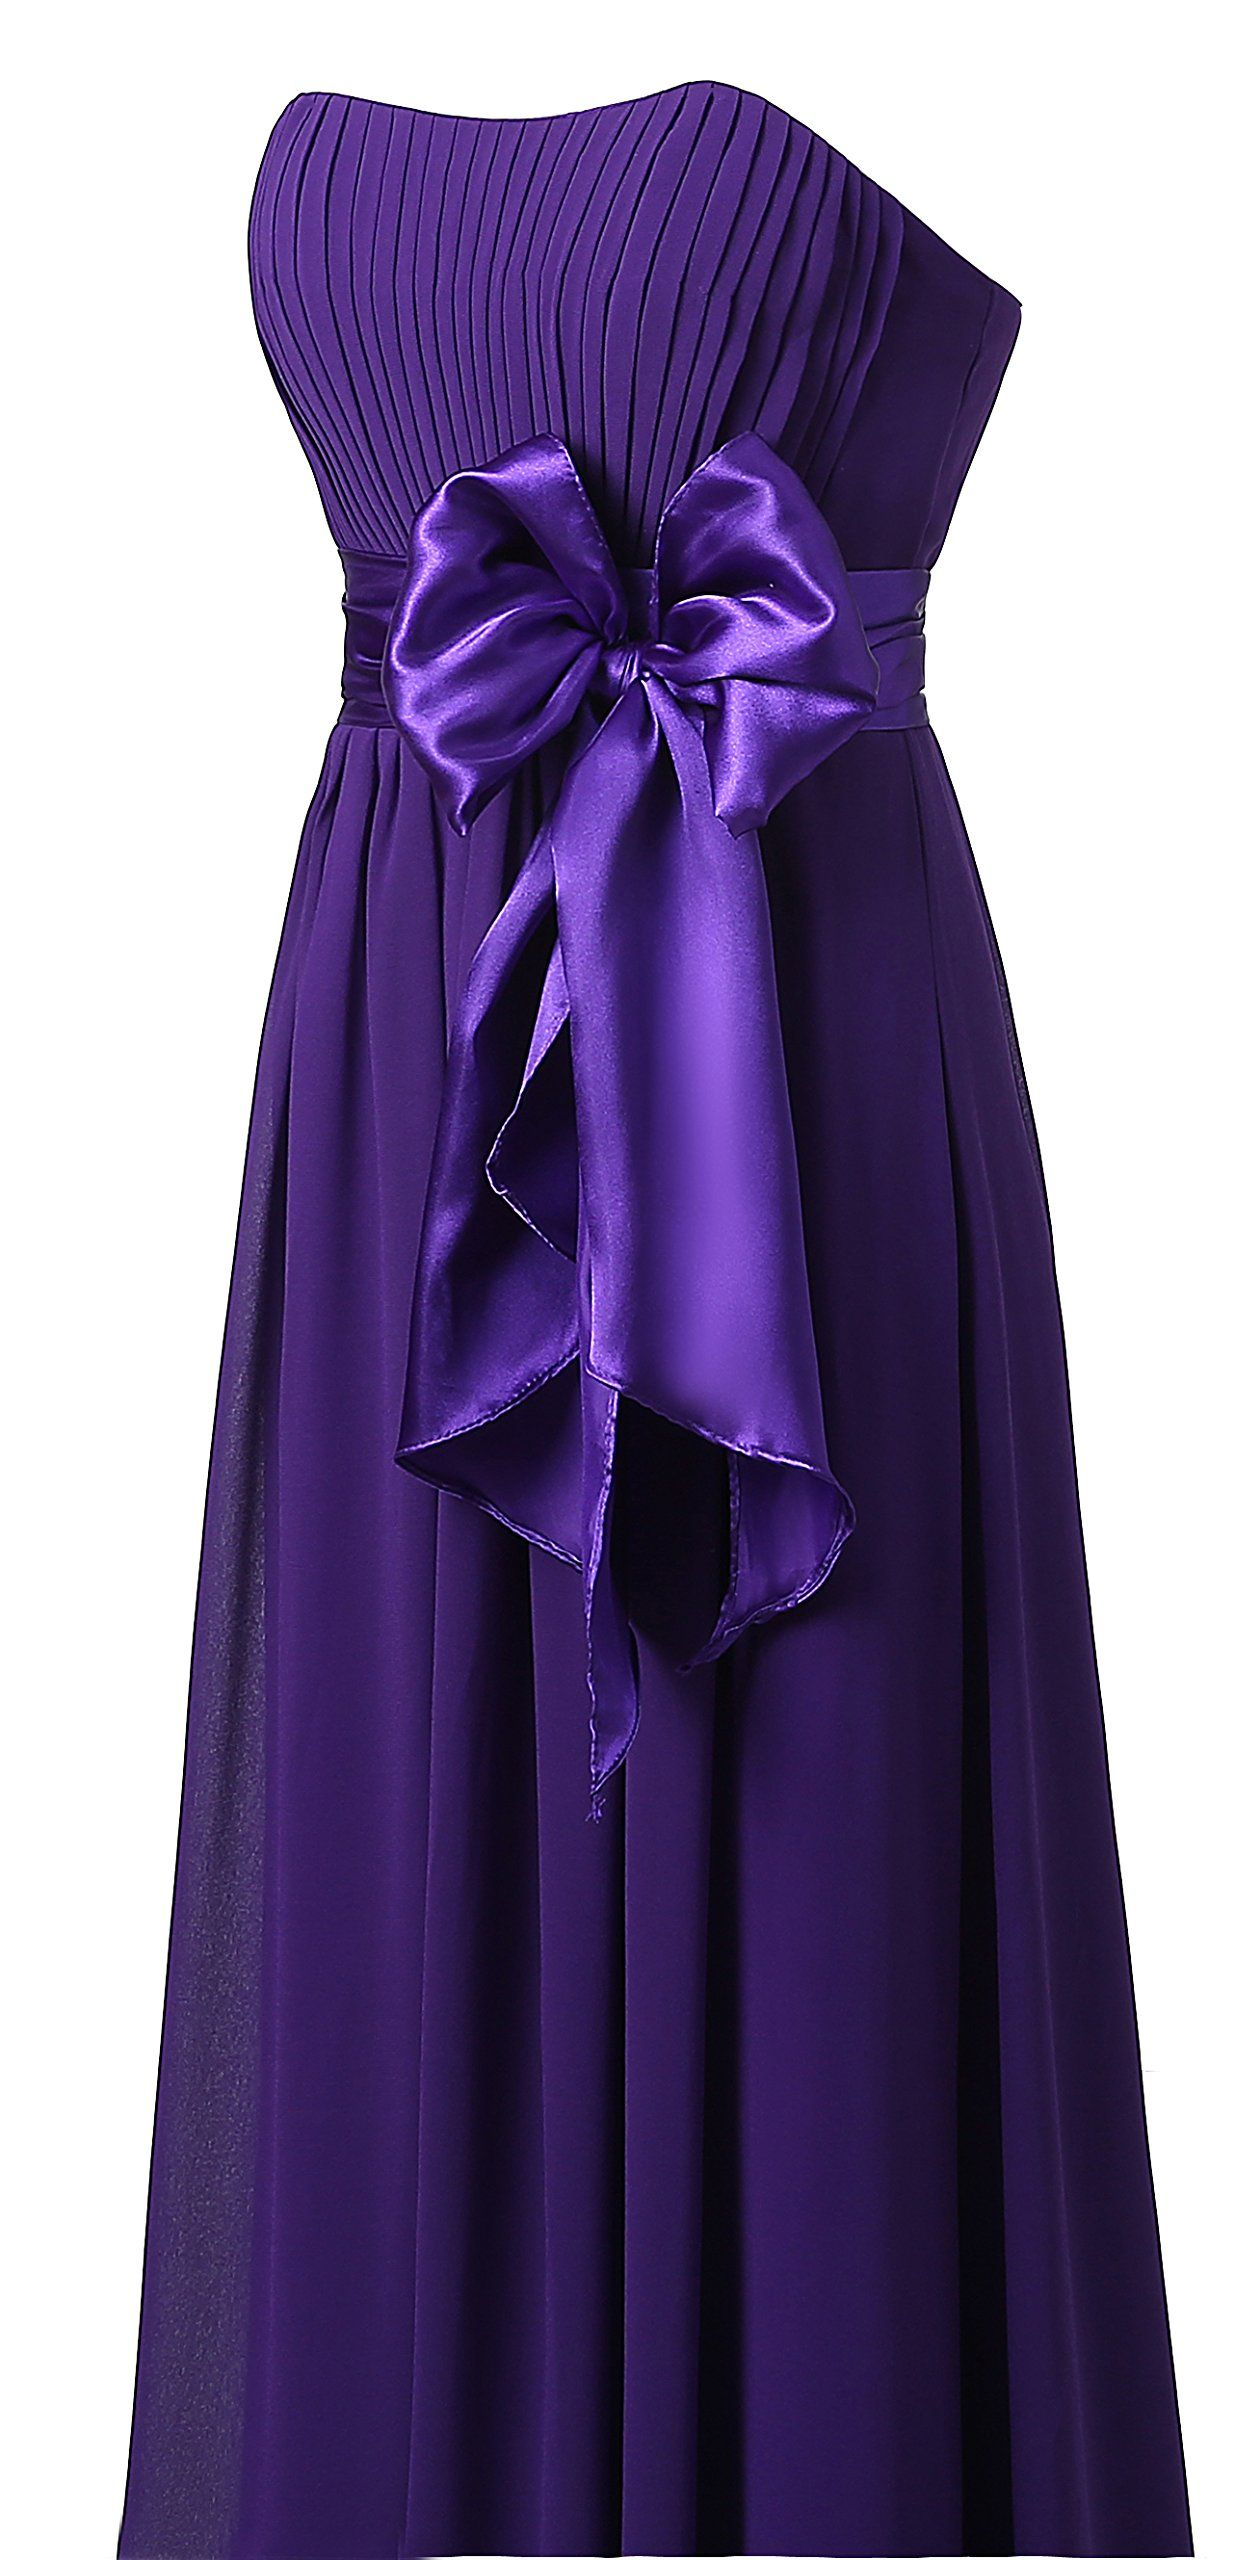 Ouman sweetheart bridesmaid chiffon prom dresses long evening gowns